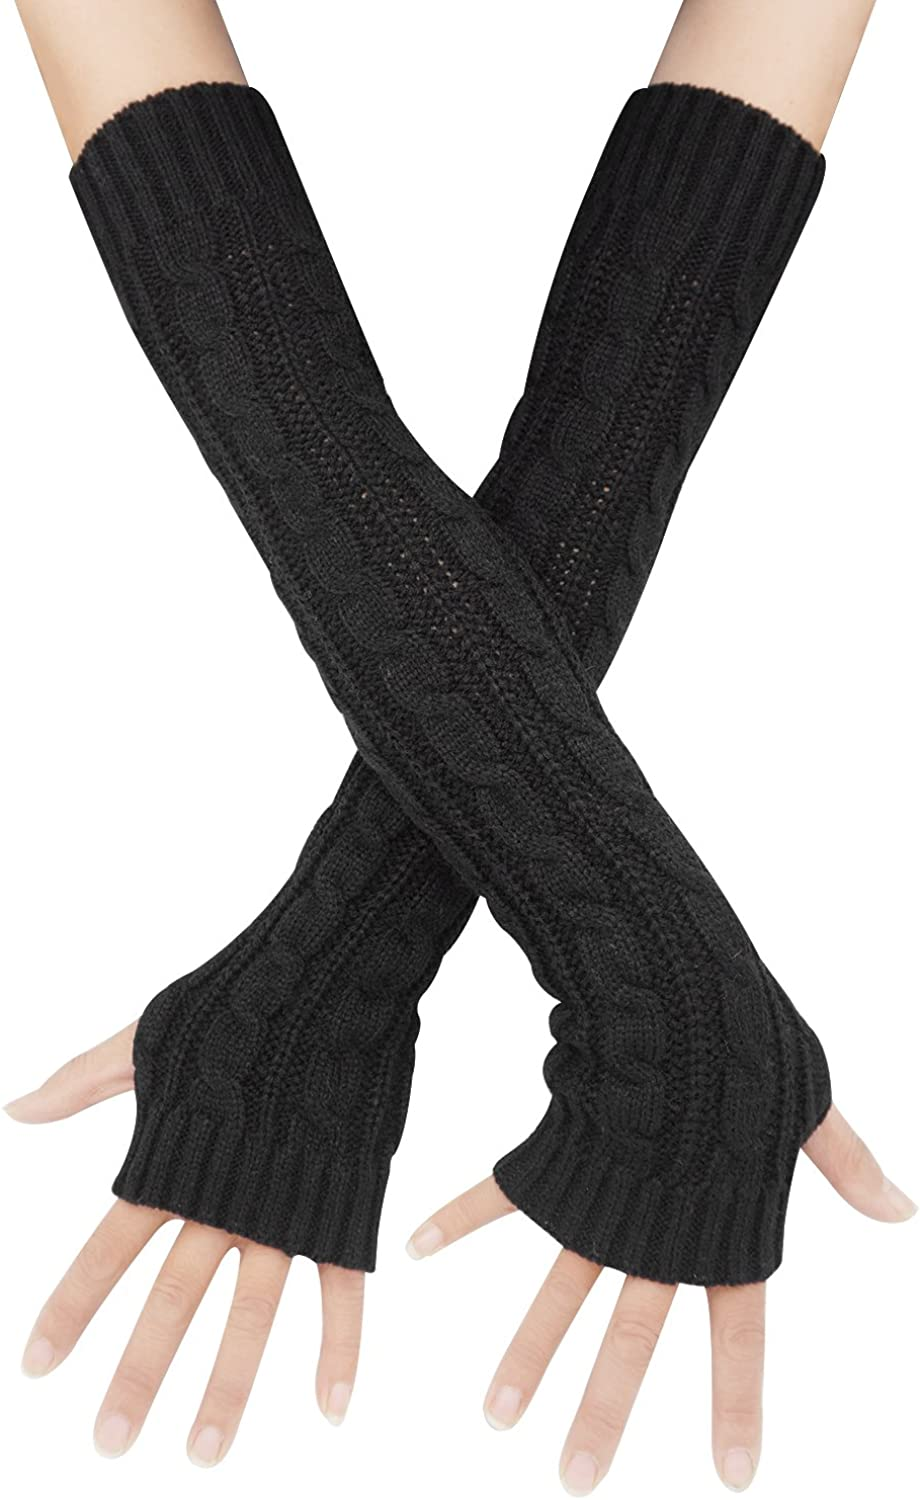 Voberry Womens Hand Cable Knitted Long Arm Warmers Fingerless Gloves Thumb Hole Gloves Mittens